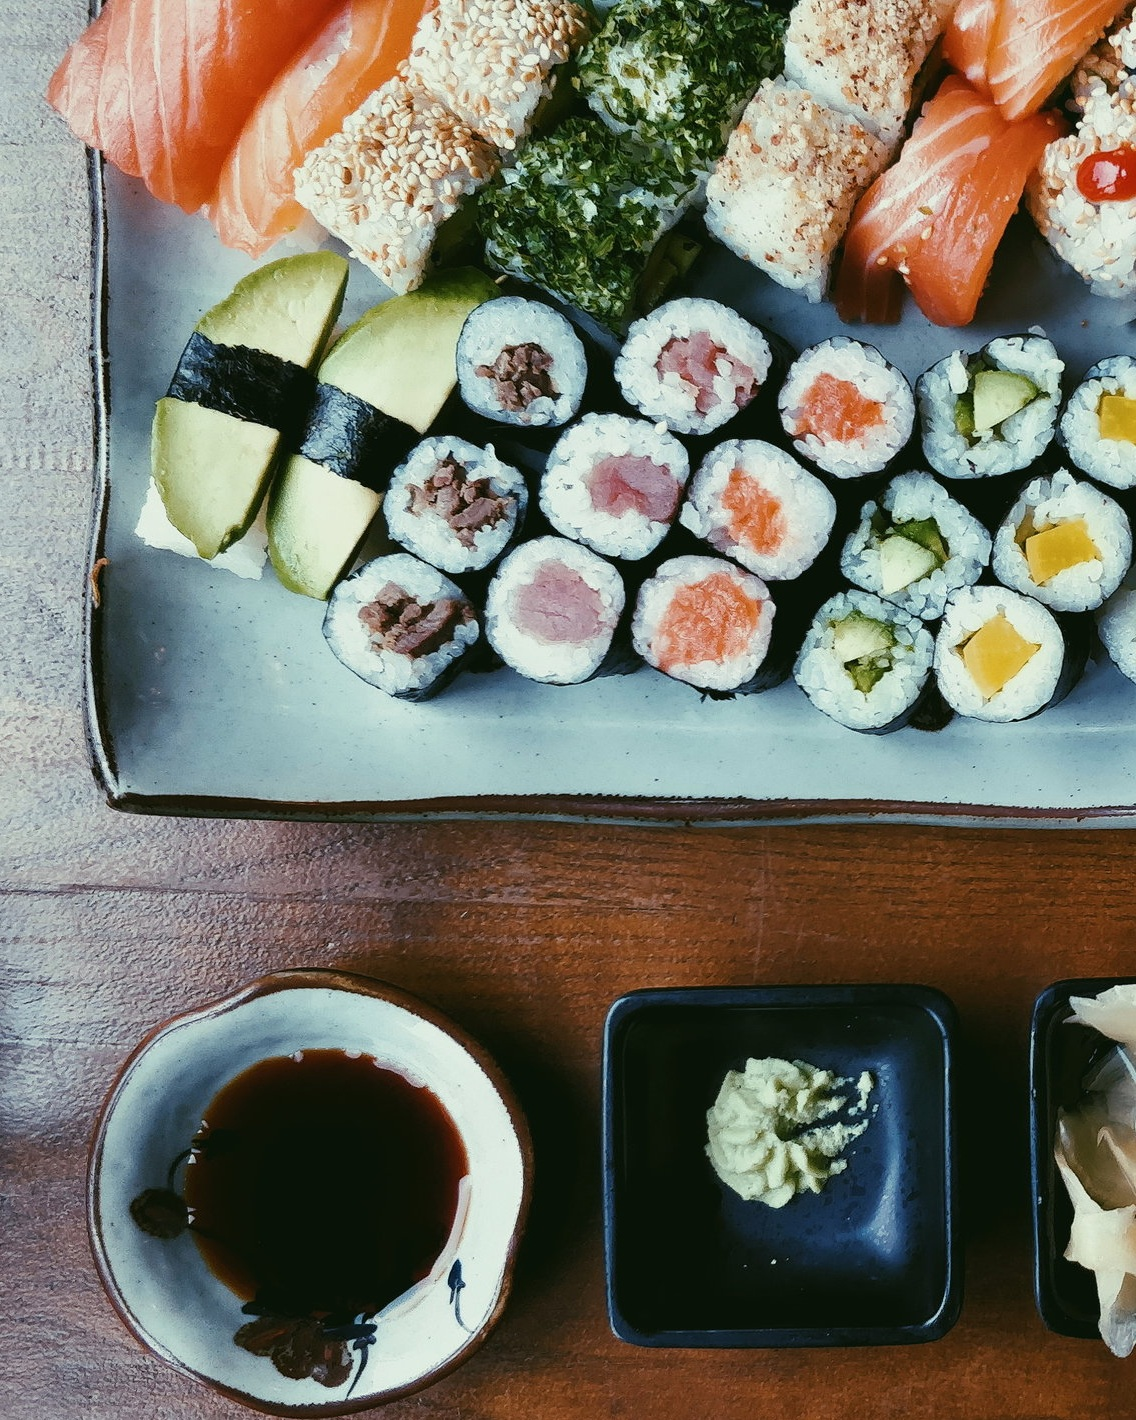 Try pairing me with sushi -